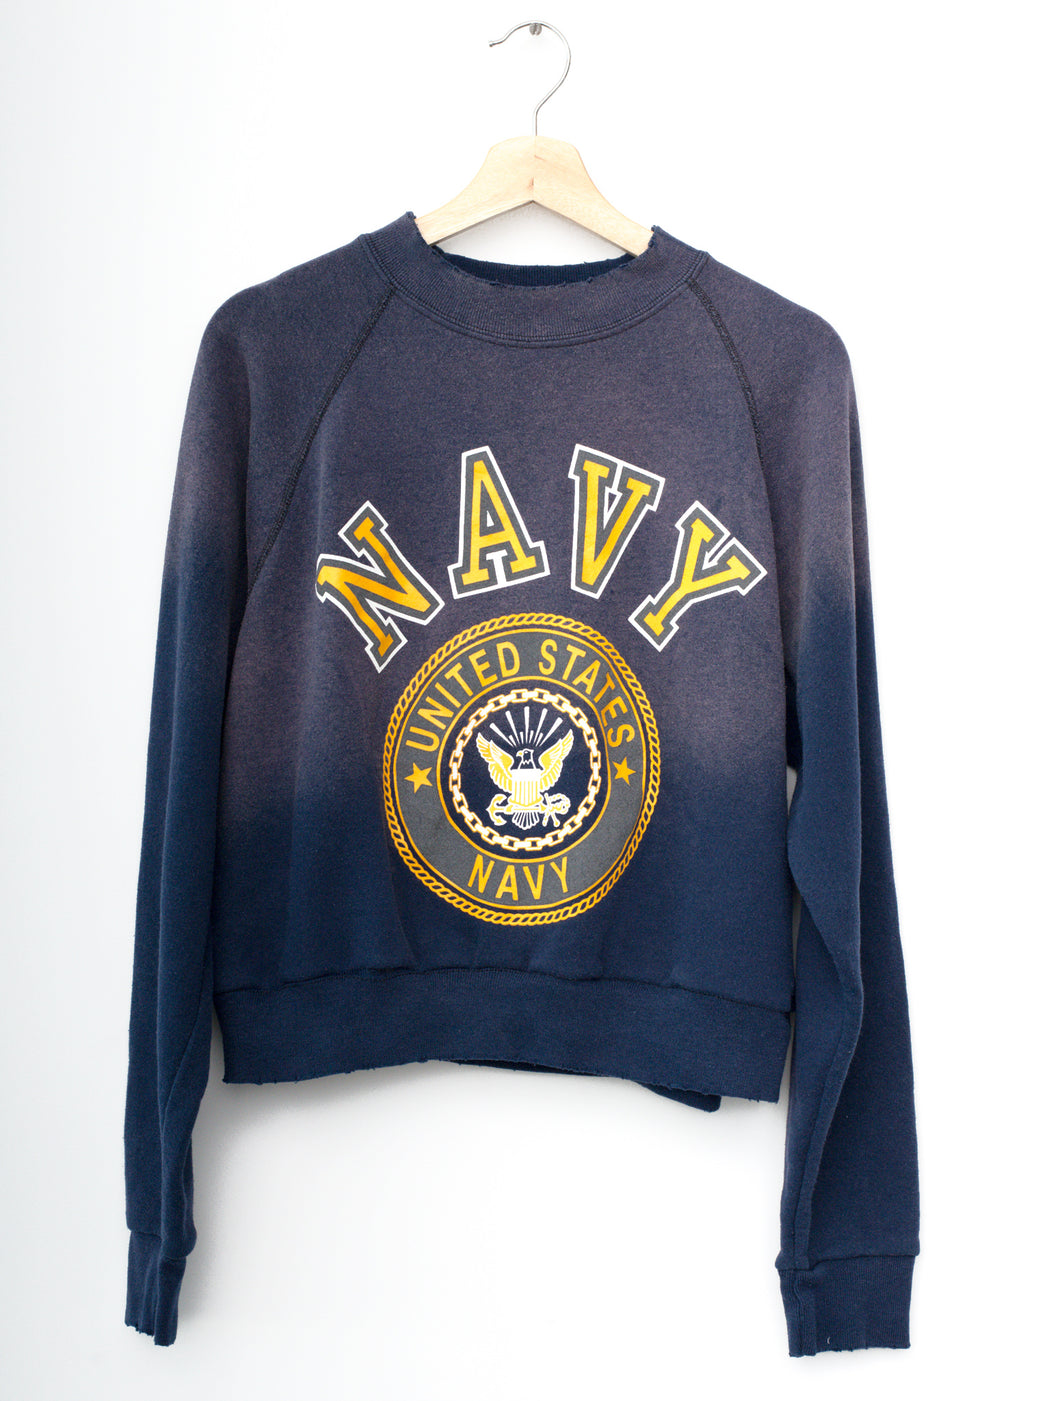 Vintage US Navy Cropped Sweatshirt